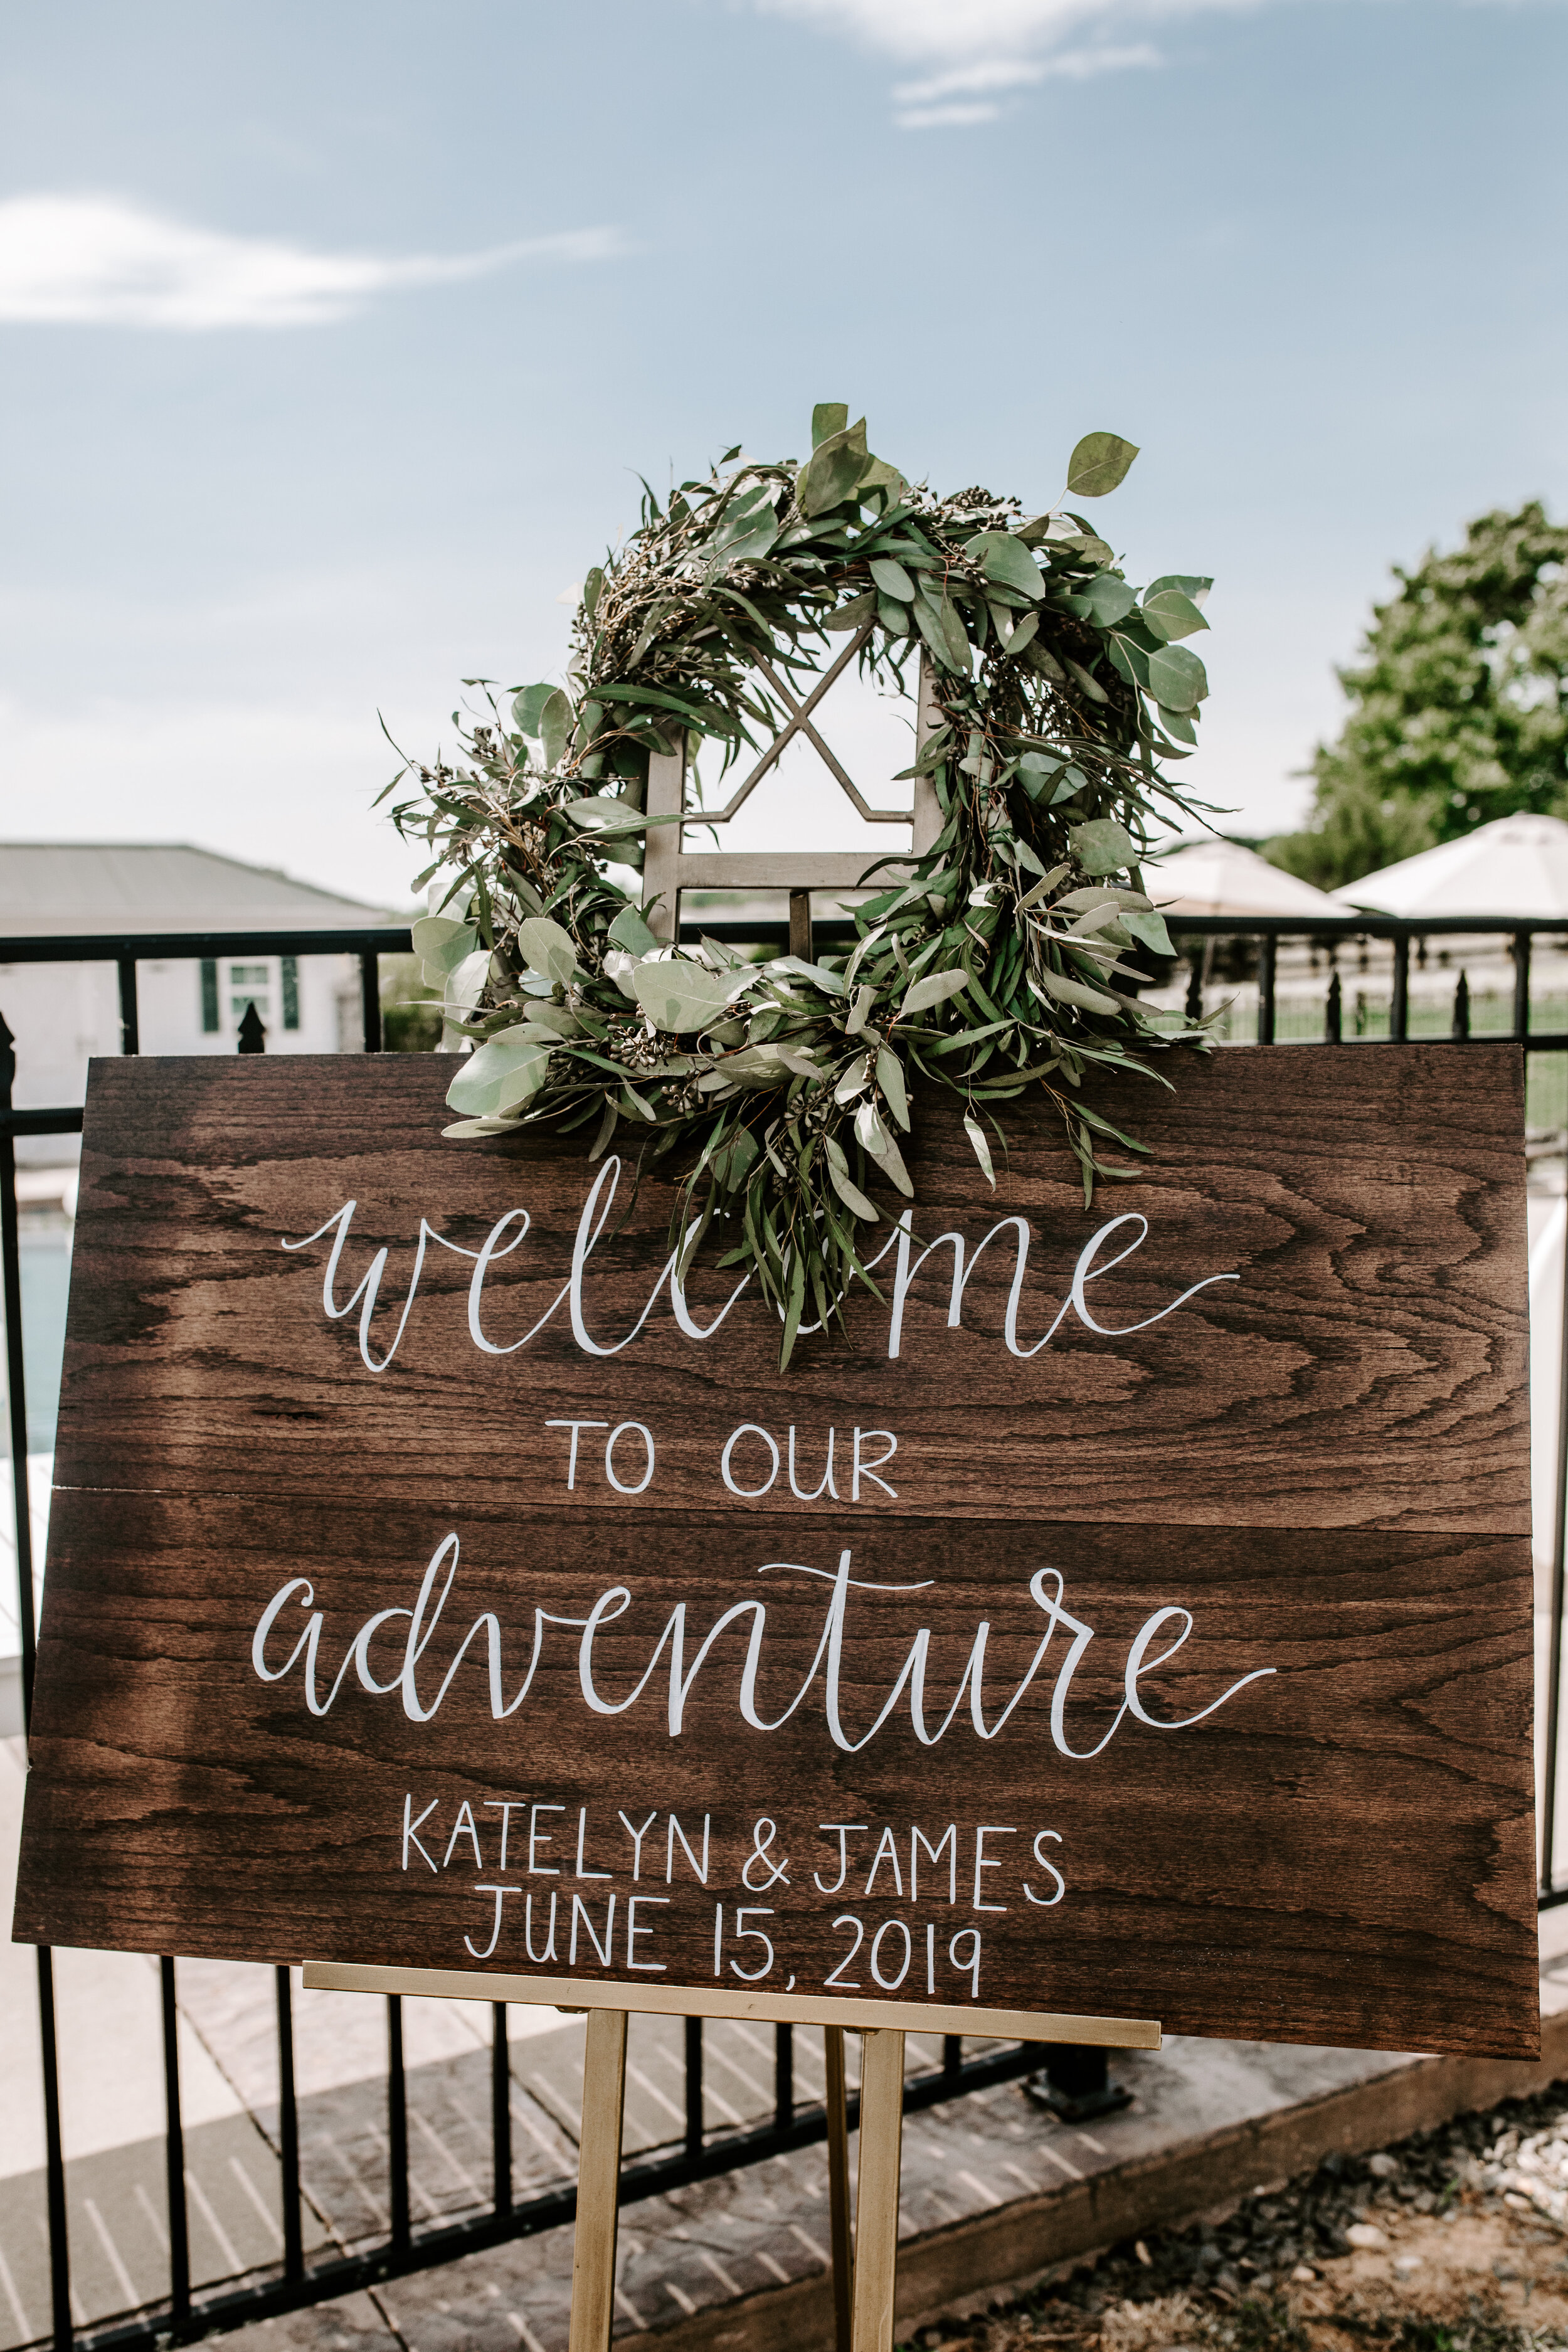 A Gorgeous Day! - Katelyn & James are the picture perfect couple! We had an amazing time collaborating with them on their beautiful vision for their big day…